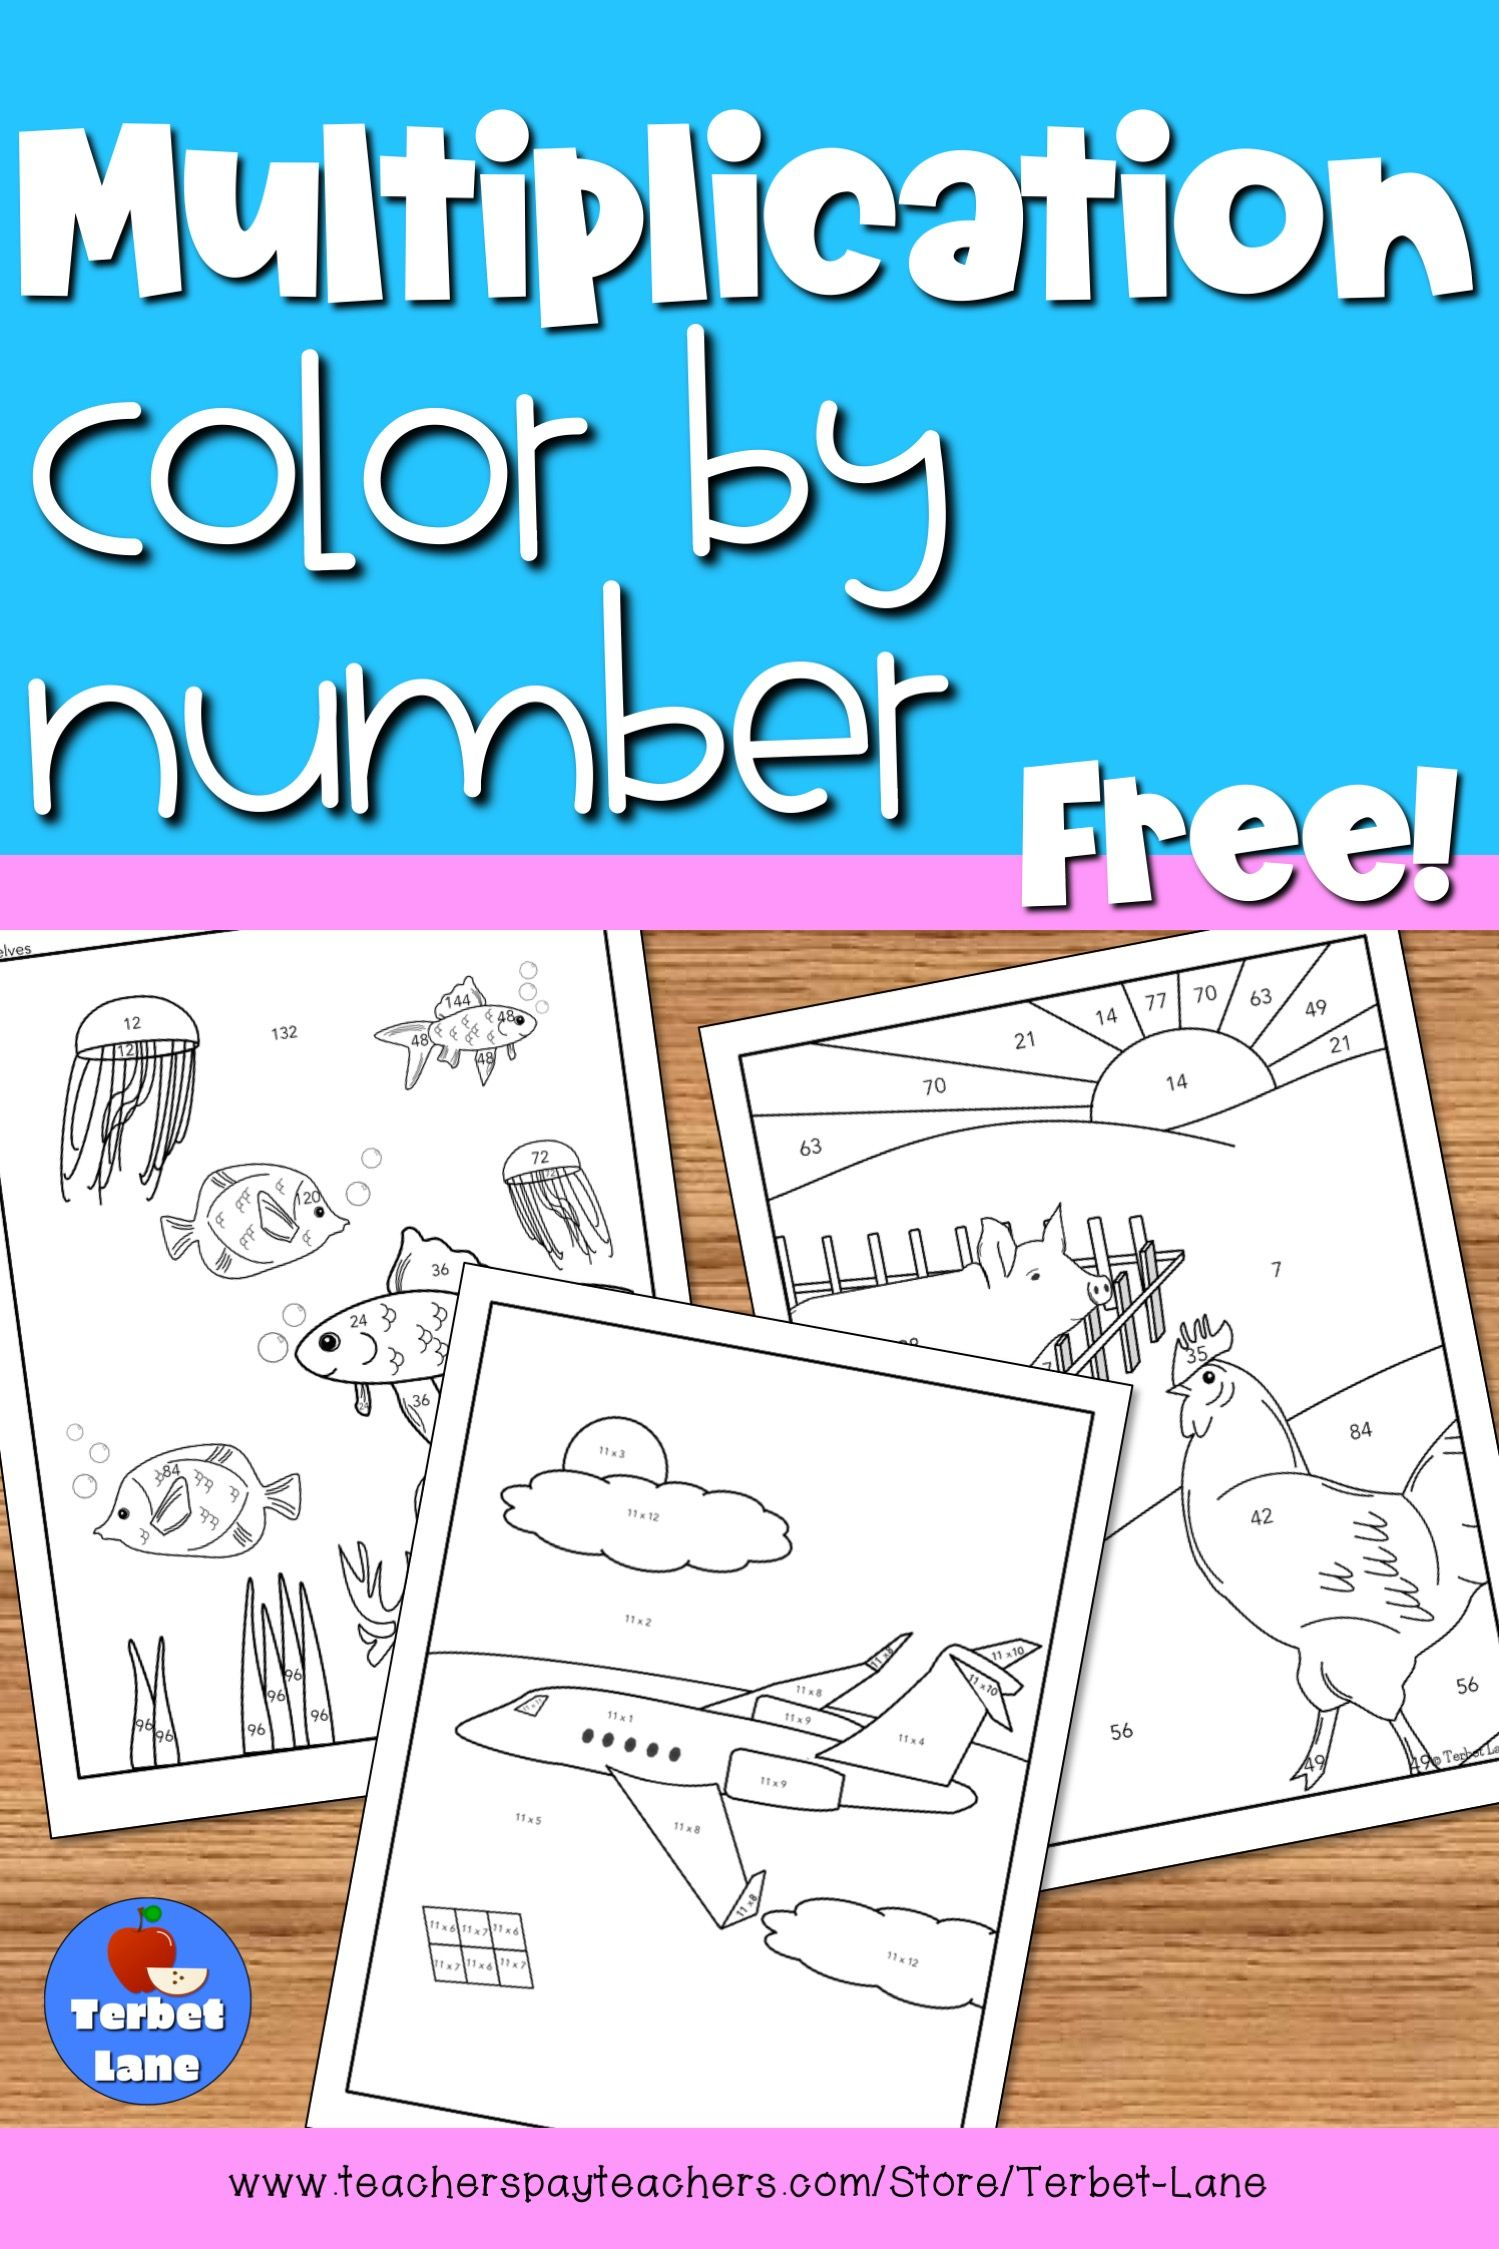 Multiplication Coloring Worksheets Color By Number Free